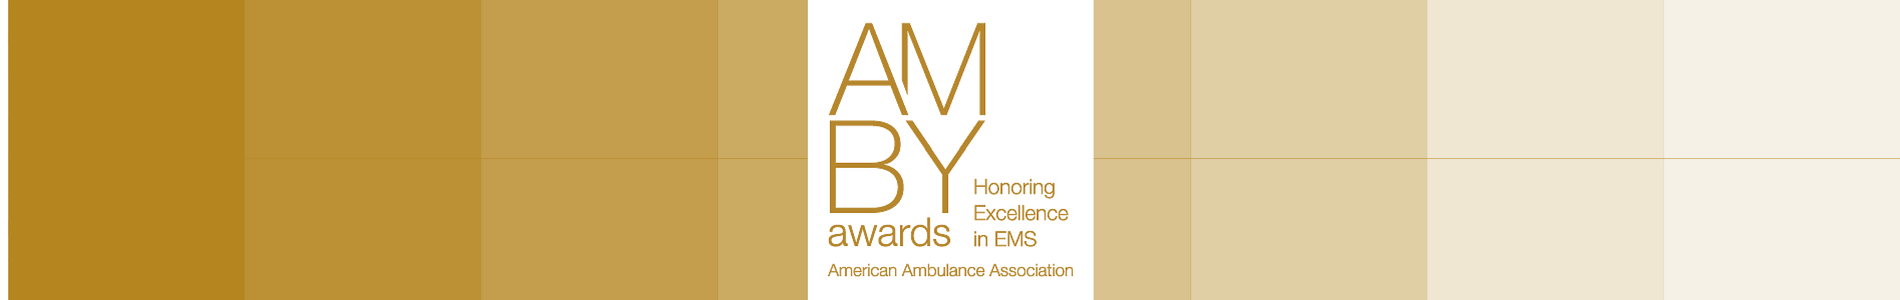 2016 Amby Best Public Relations Campaign Emsa Cpr Education